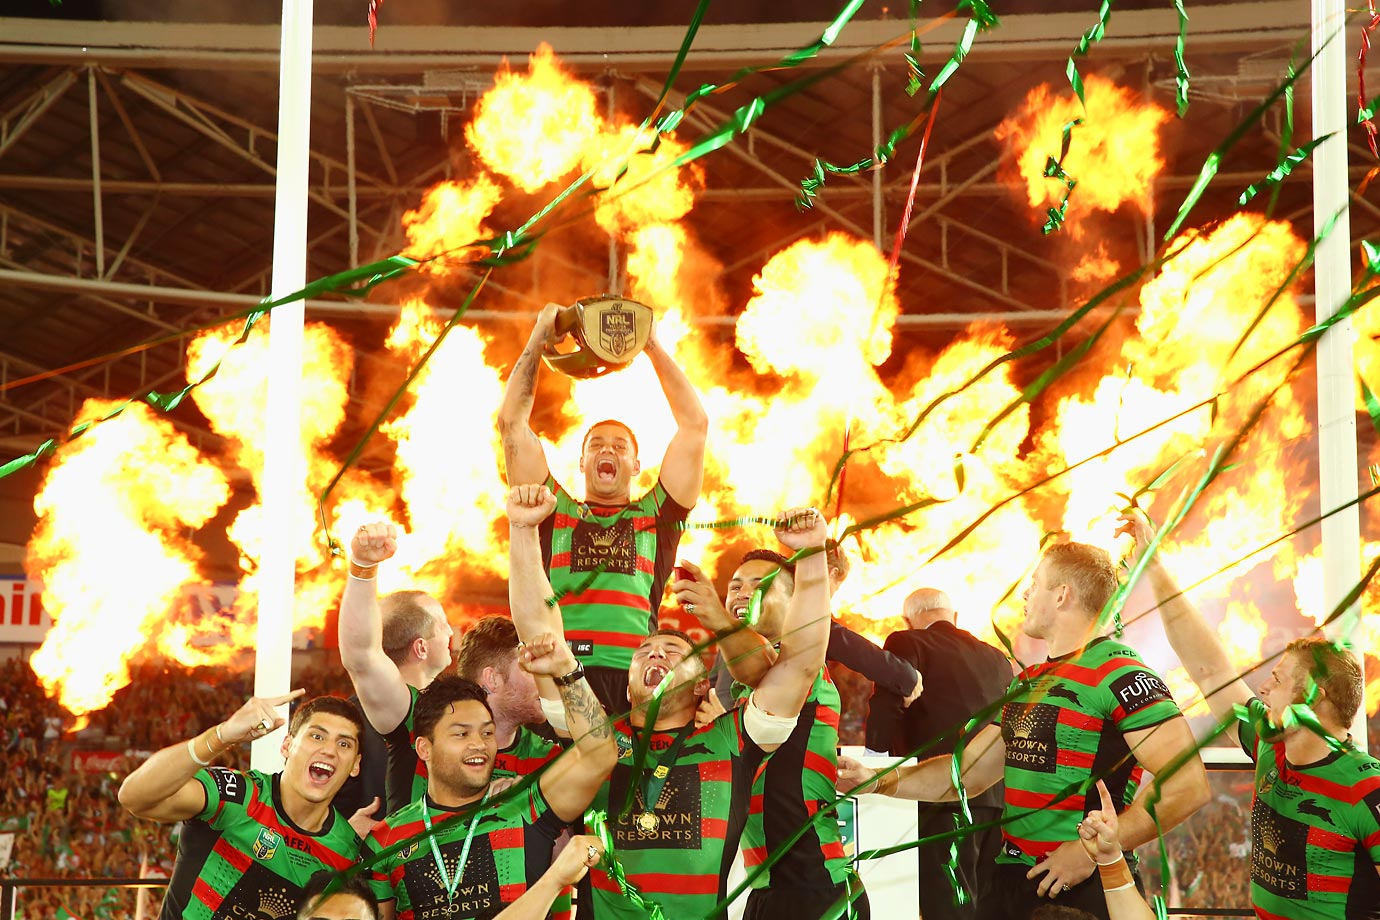 John Sutton lifts the trophy as the Rabitohs celebrate their victory during the 2014 NRL Grand Final match against the Canterbury Bulldogs.